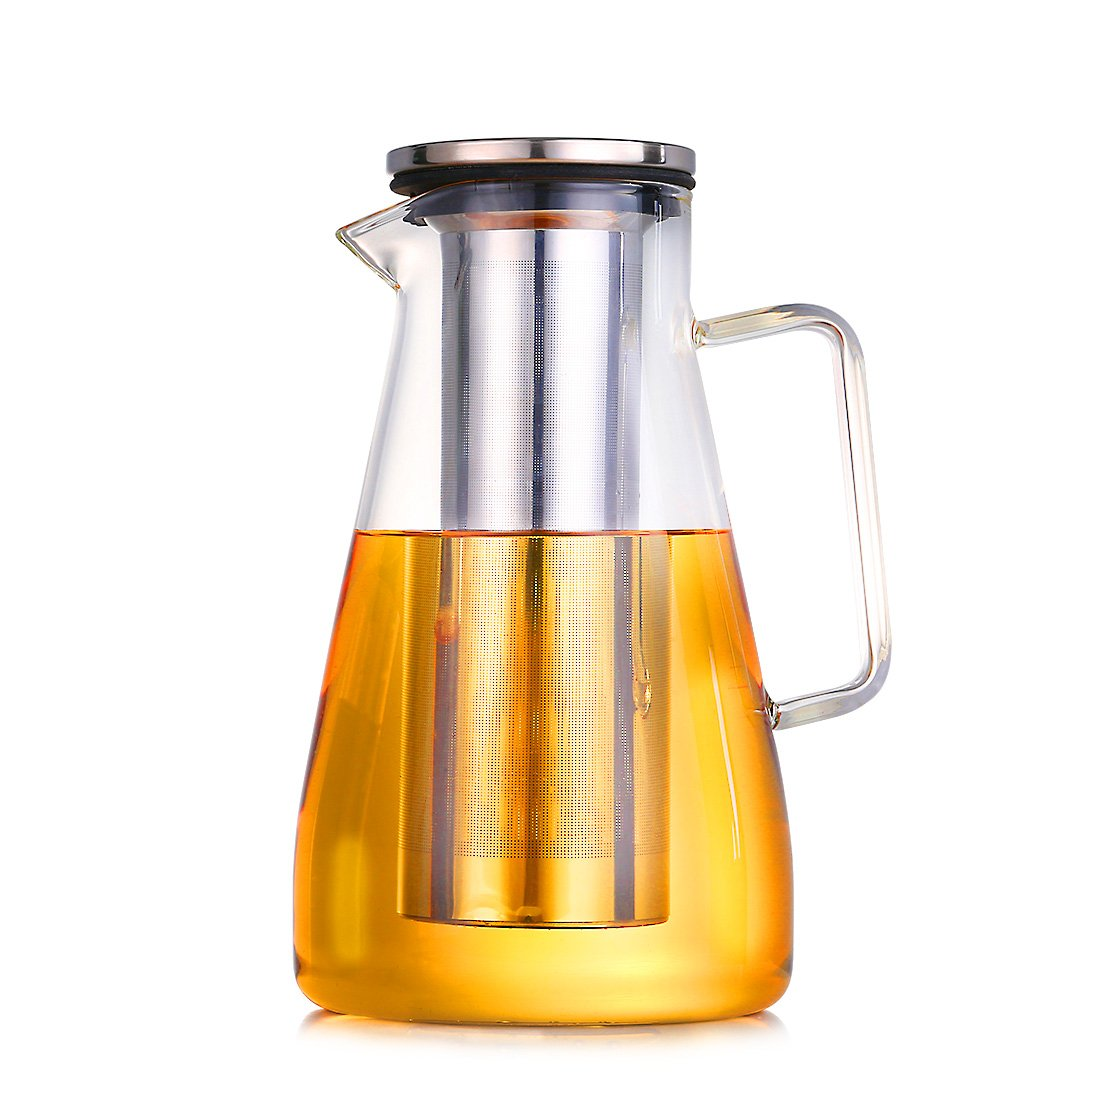 ONEISALL Airtight Glass Cold Brew Coffee Maker, Glass Coffee Carafe Pitcher with Removable Stainless Steel Filter, Fruit infuser pitcher, 1.8L (1.8L) by oneisall